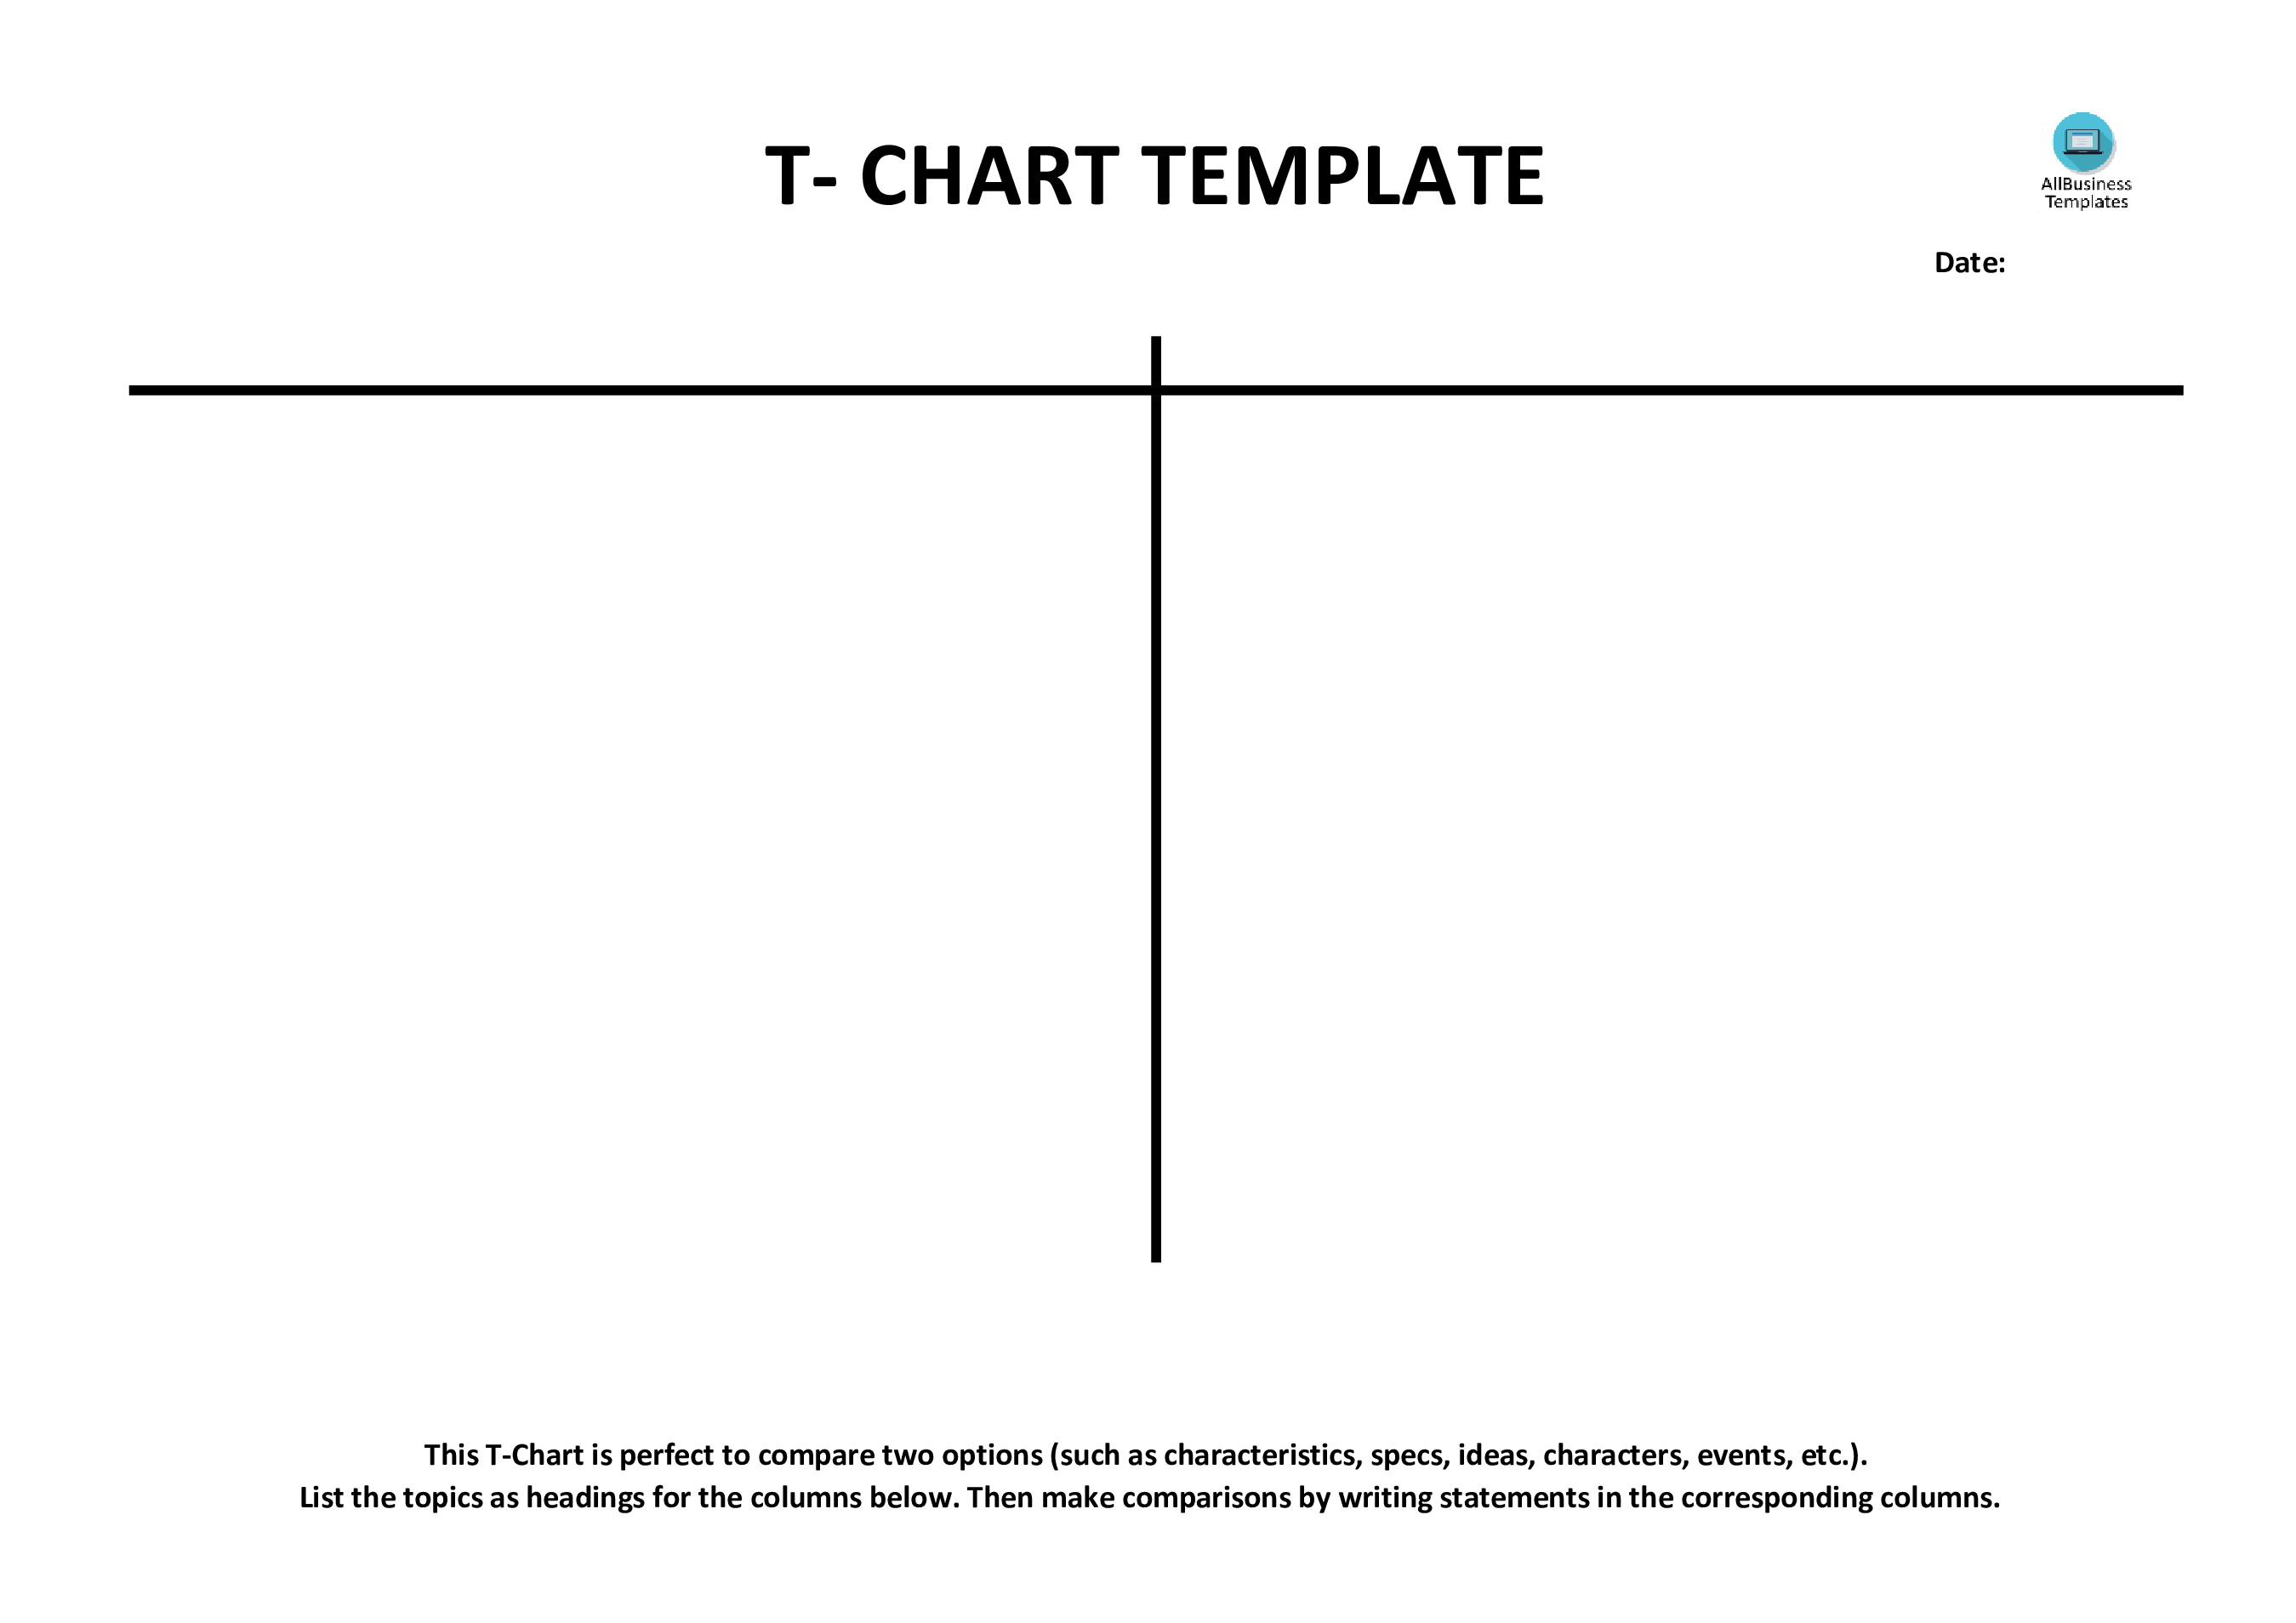 free t-chart example (blank) | templates at allbusinesstemplates